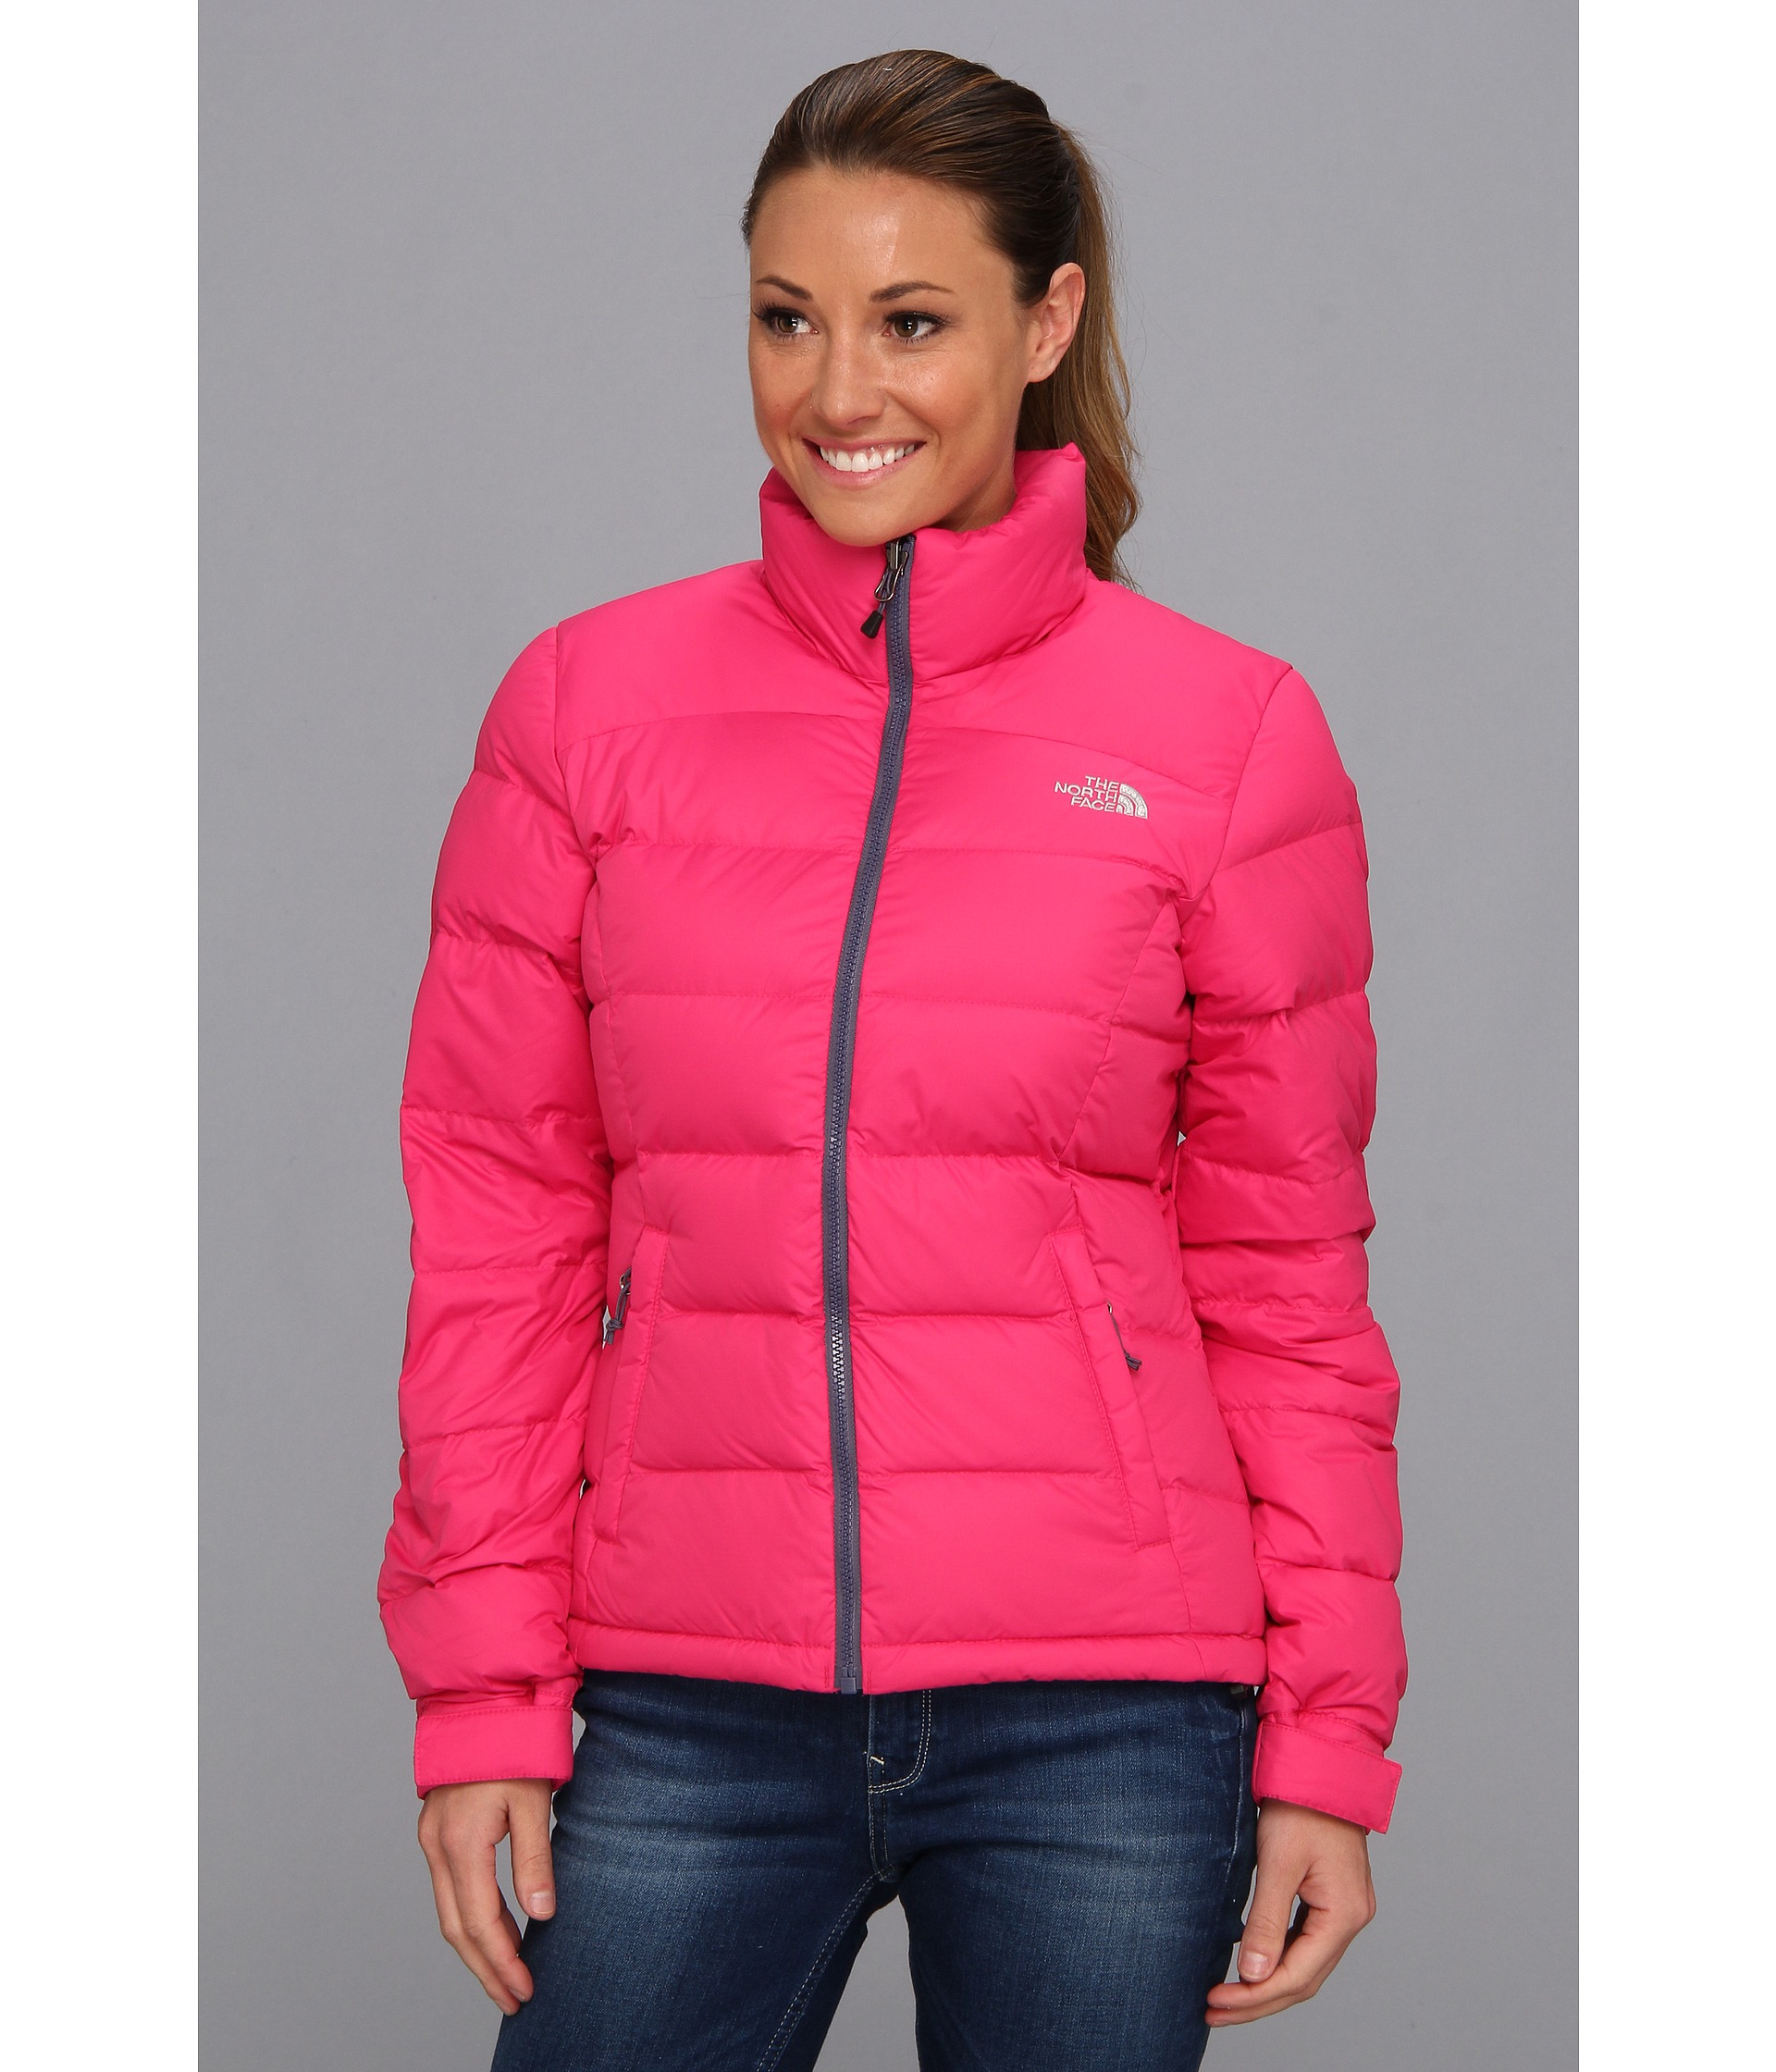 e7083816ee8 The North Face Nuptse 2 Jacket in Pink - Lyst